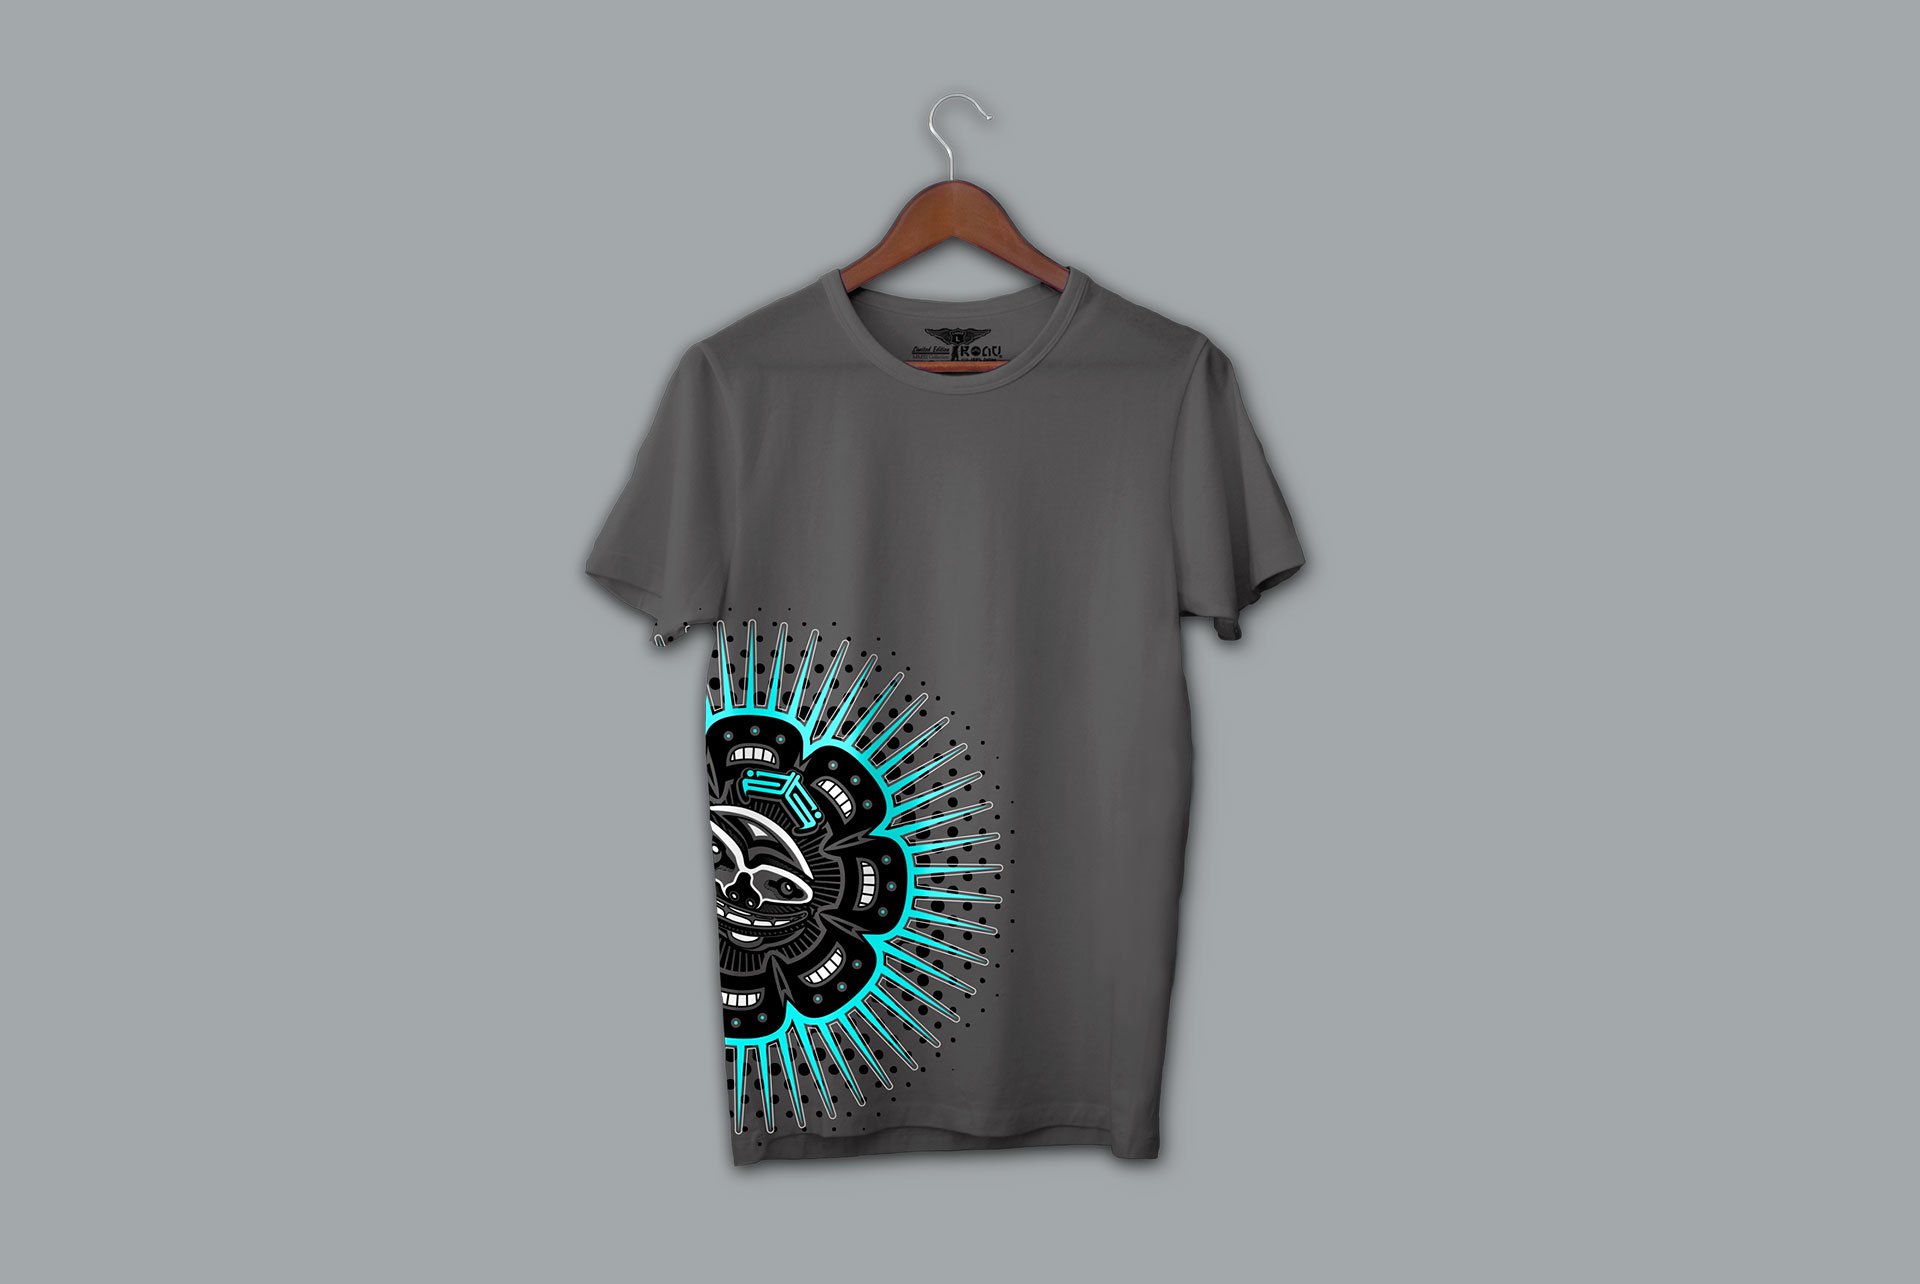 Dawn Session premium t-shirt by KOAV